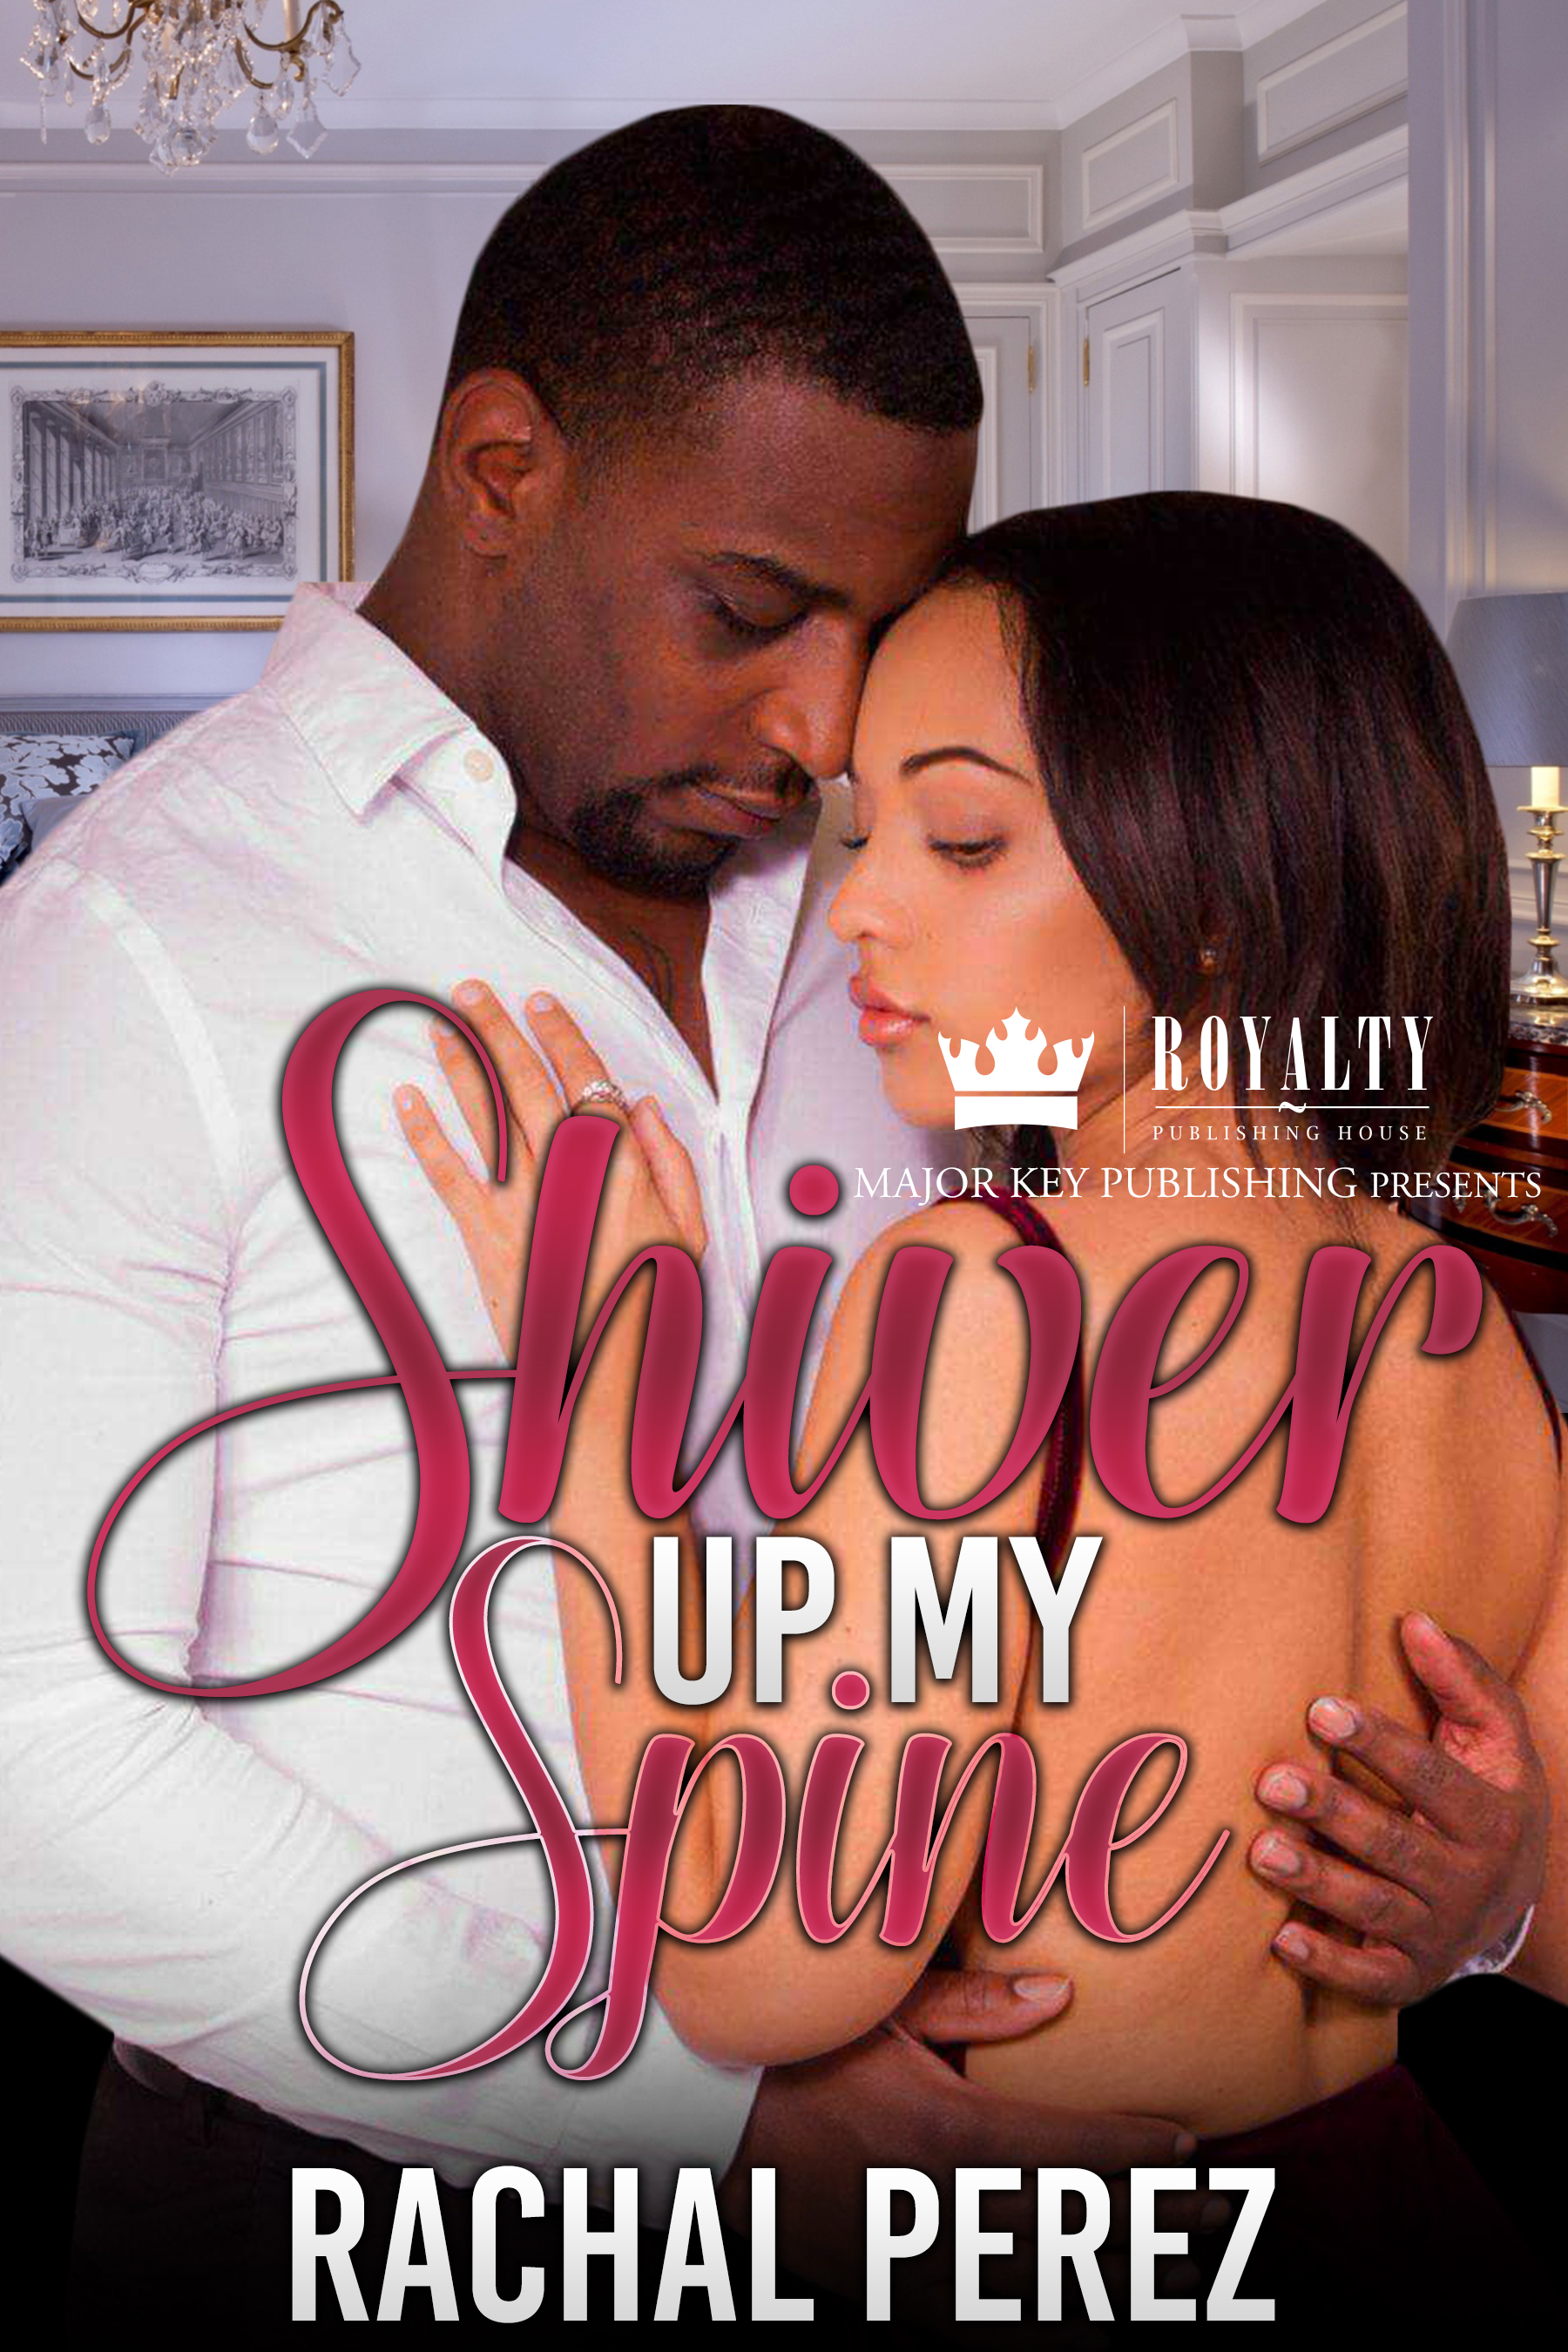 shiver-up-my-spine2